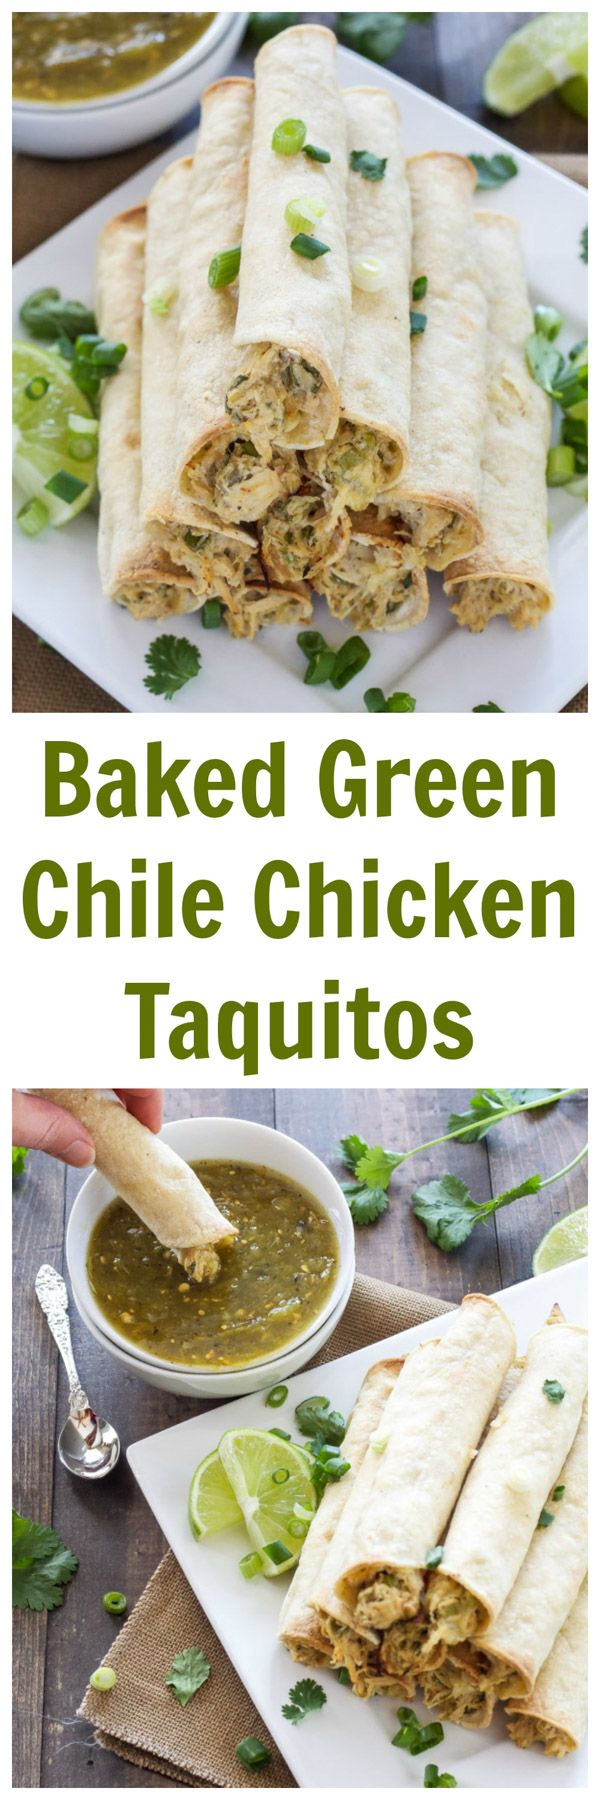 Baked Green Chile Chicken Taquitos | I love these lighter baked taquitos! They have the creamiest chicken filling! | www.reciperunner.com